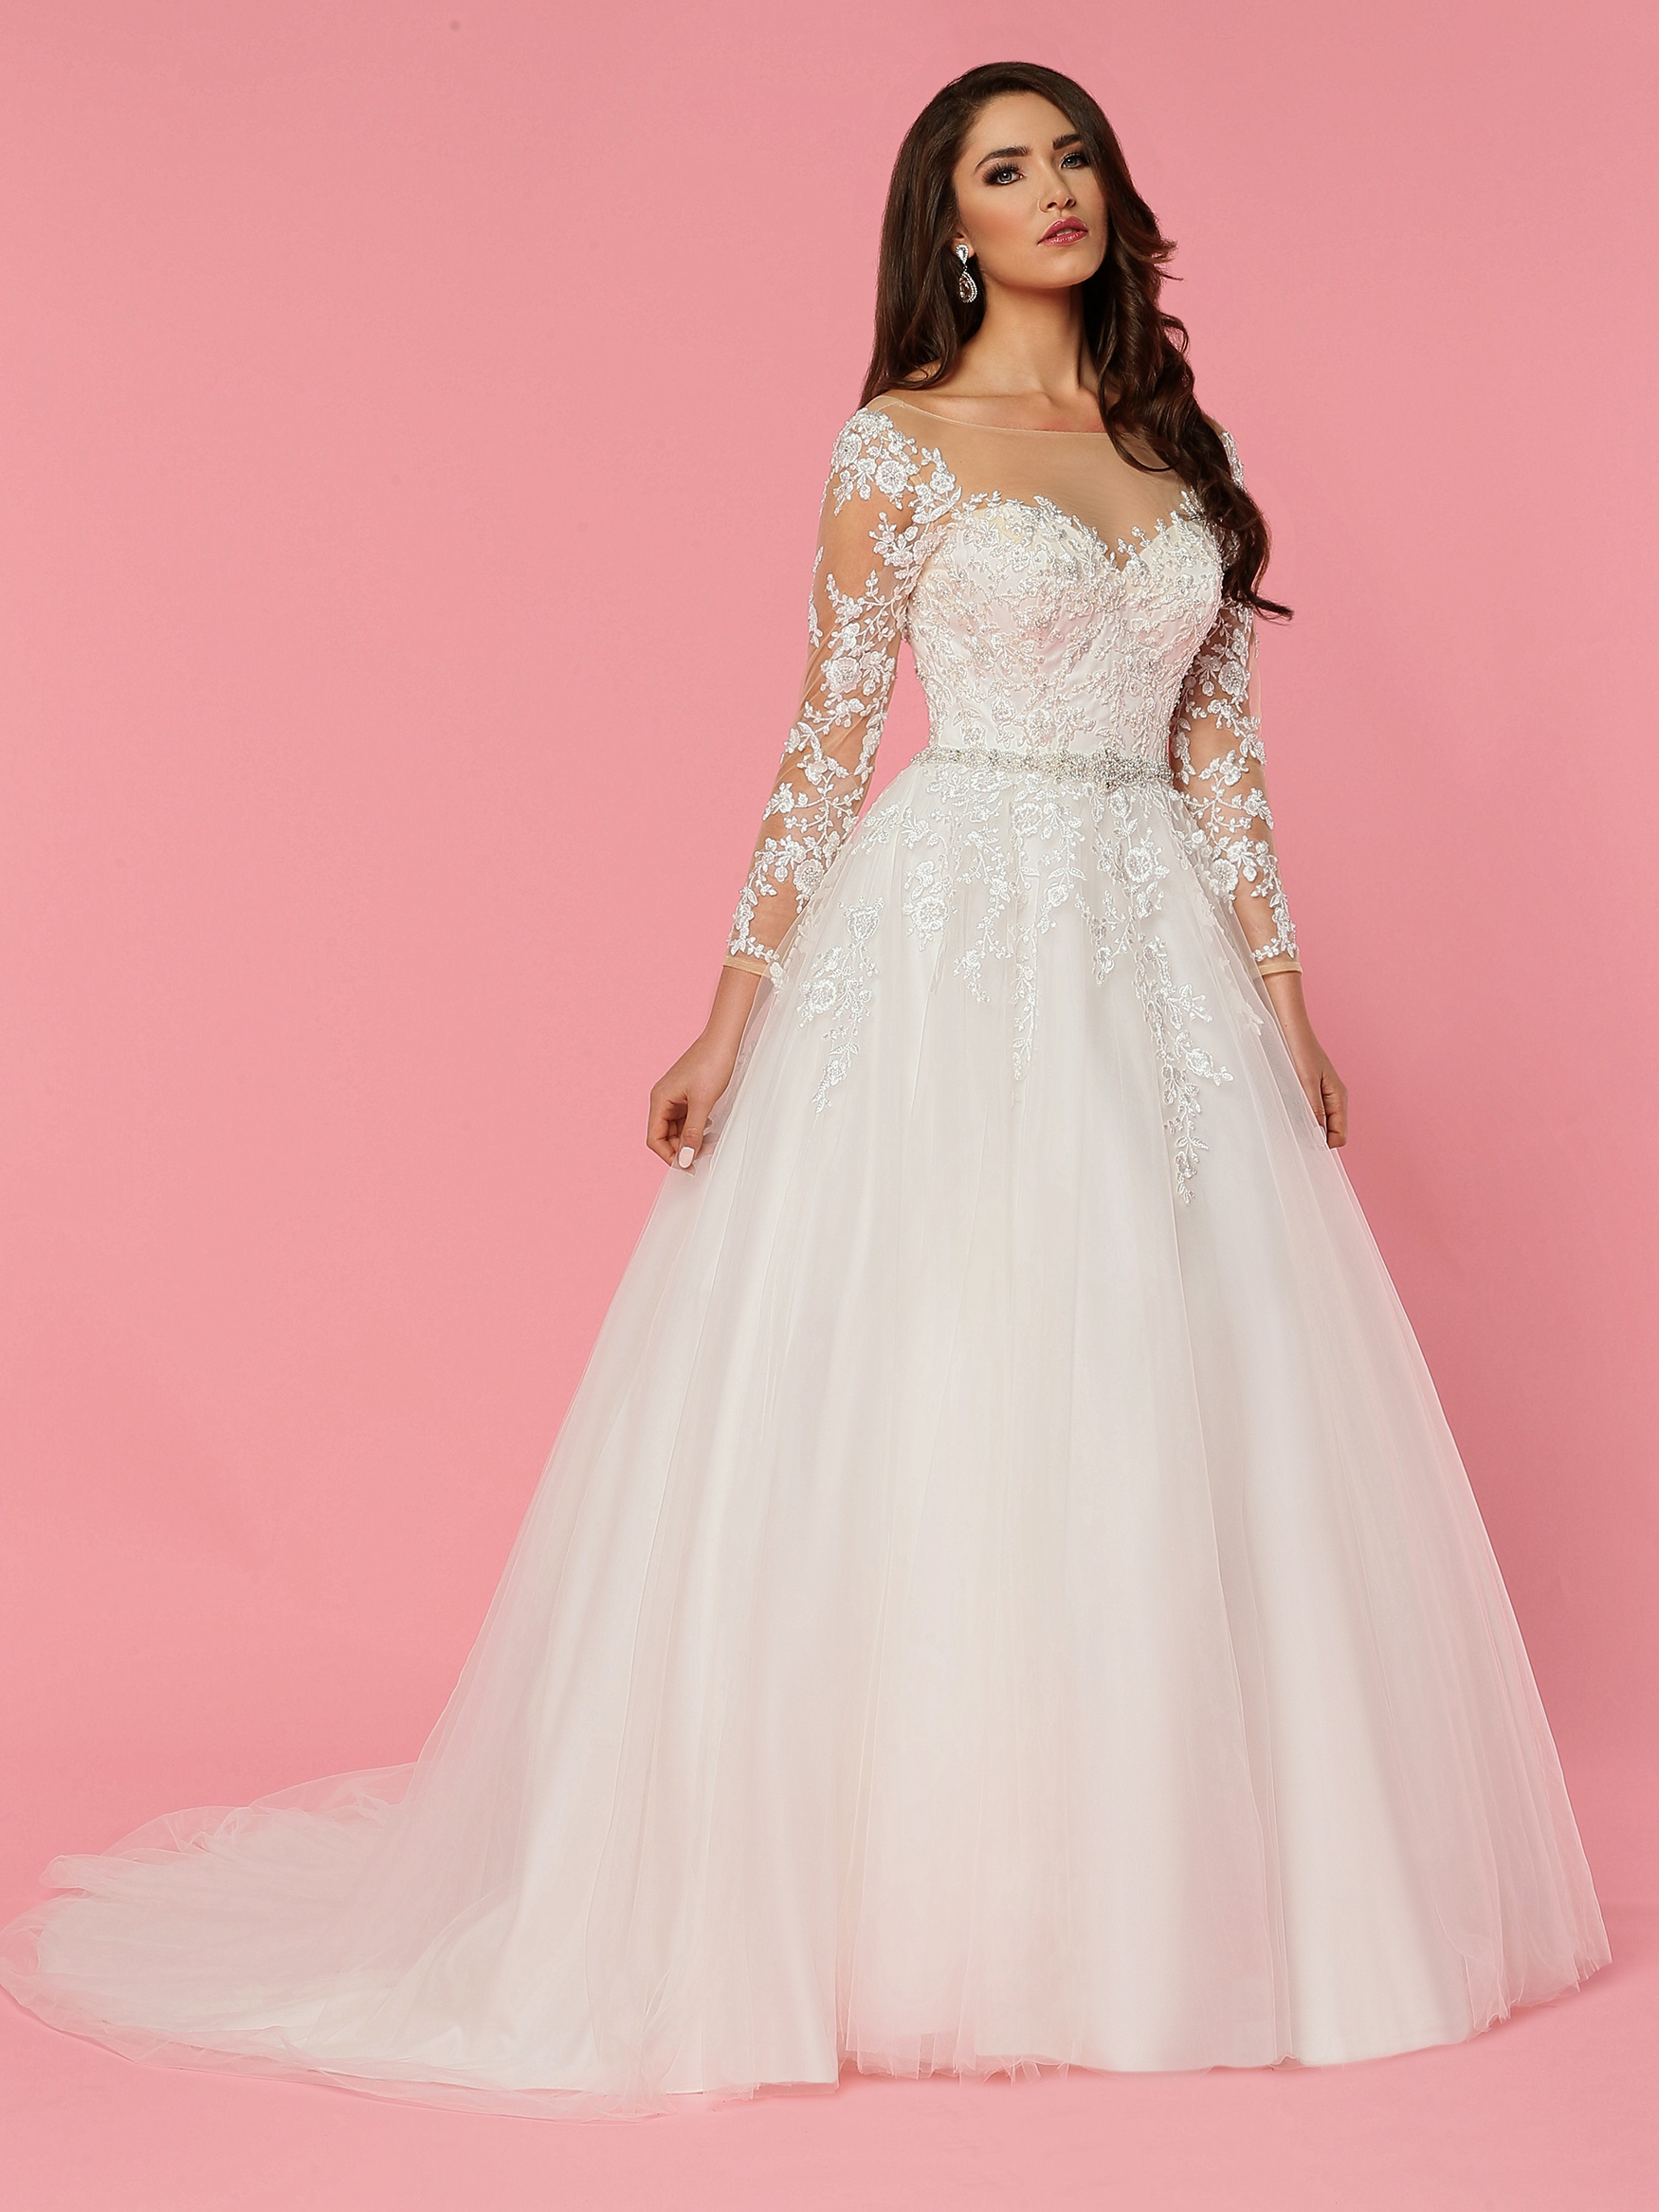 Davinci wedding dresses style 50470 tulle lace davinci davinci wedding dresses style 50470 tulle lace davinci bridal collection ombrellifo Images